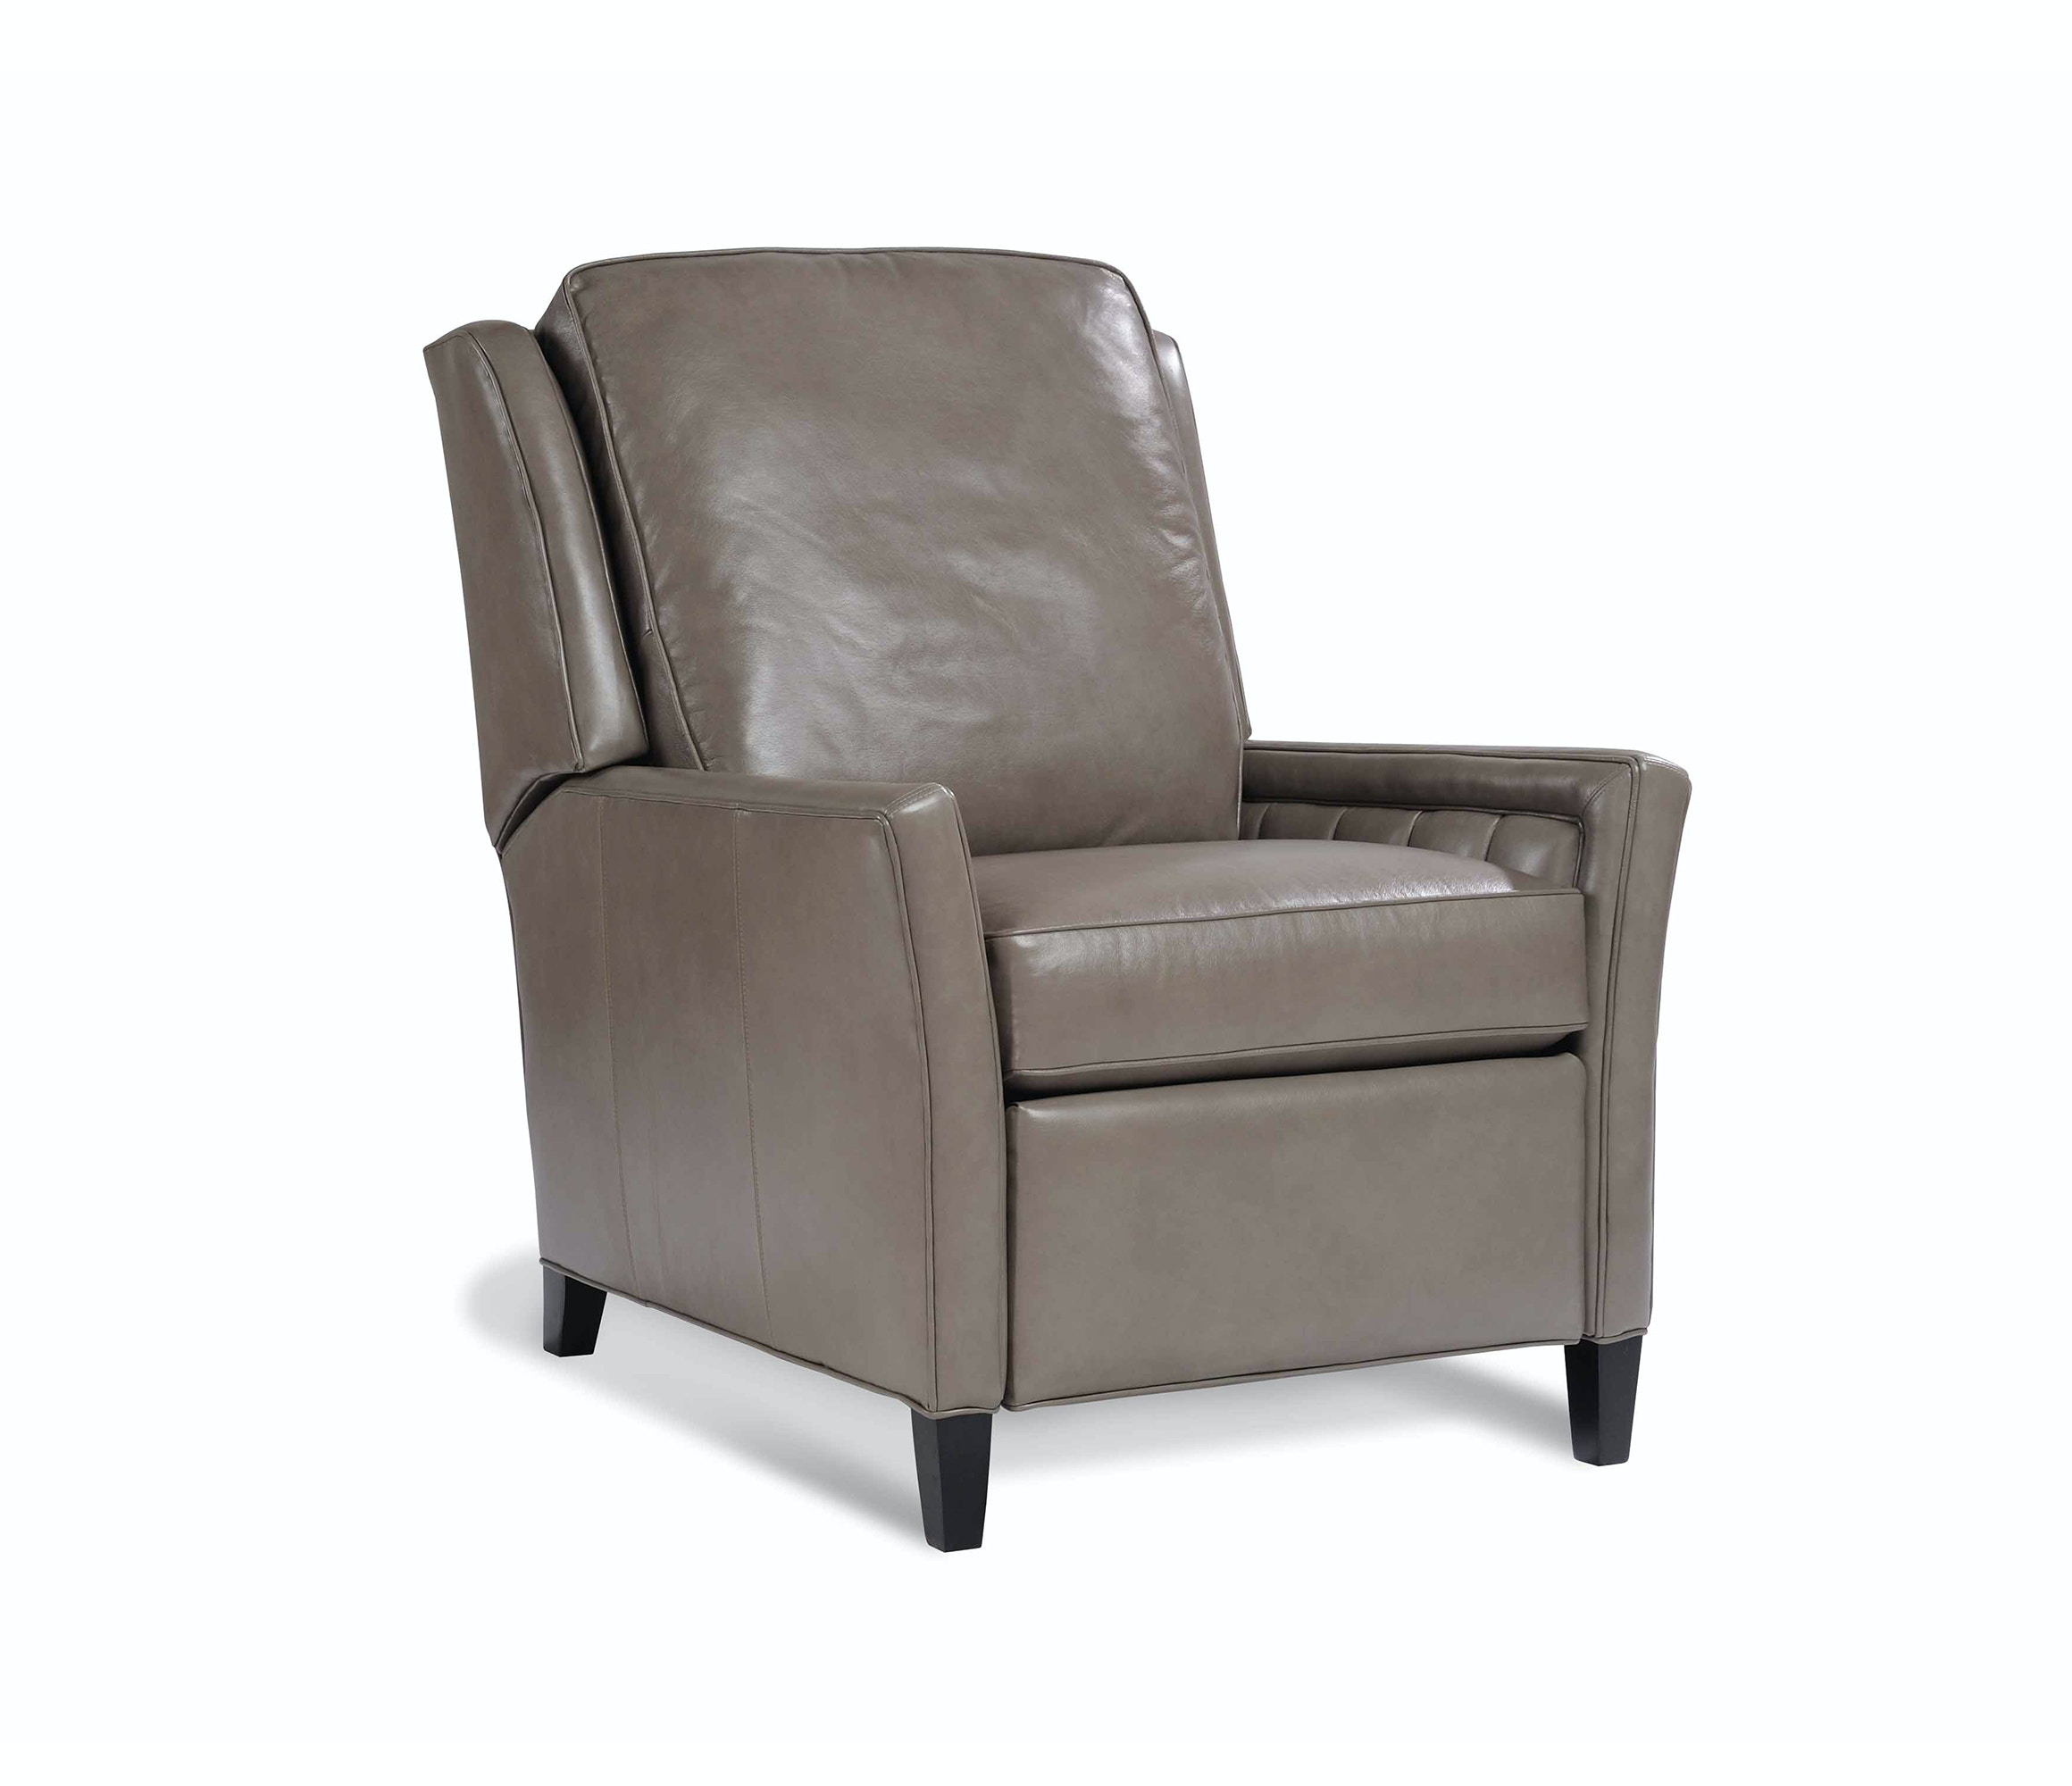 Taylor King Furniture McNab Reclining Chair L6913 H